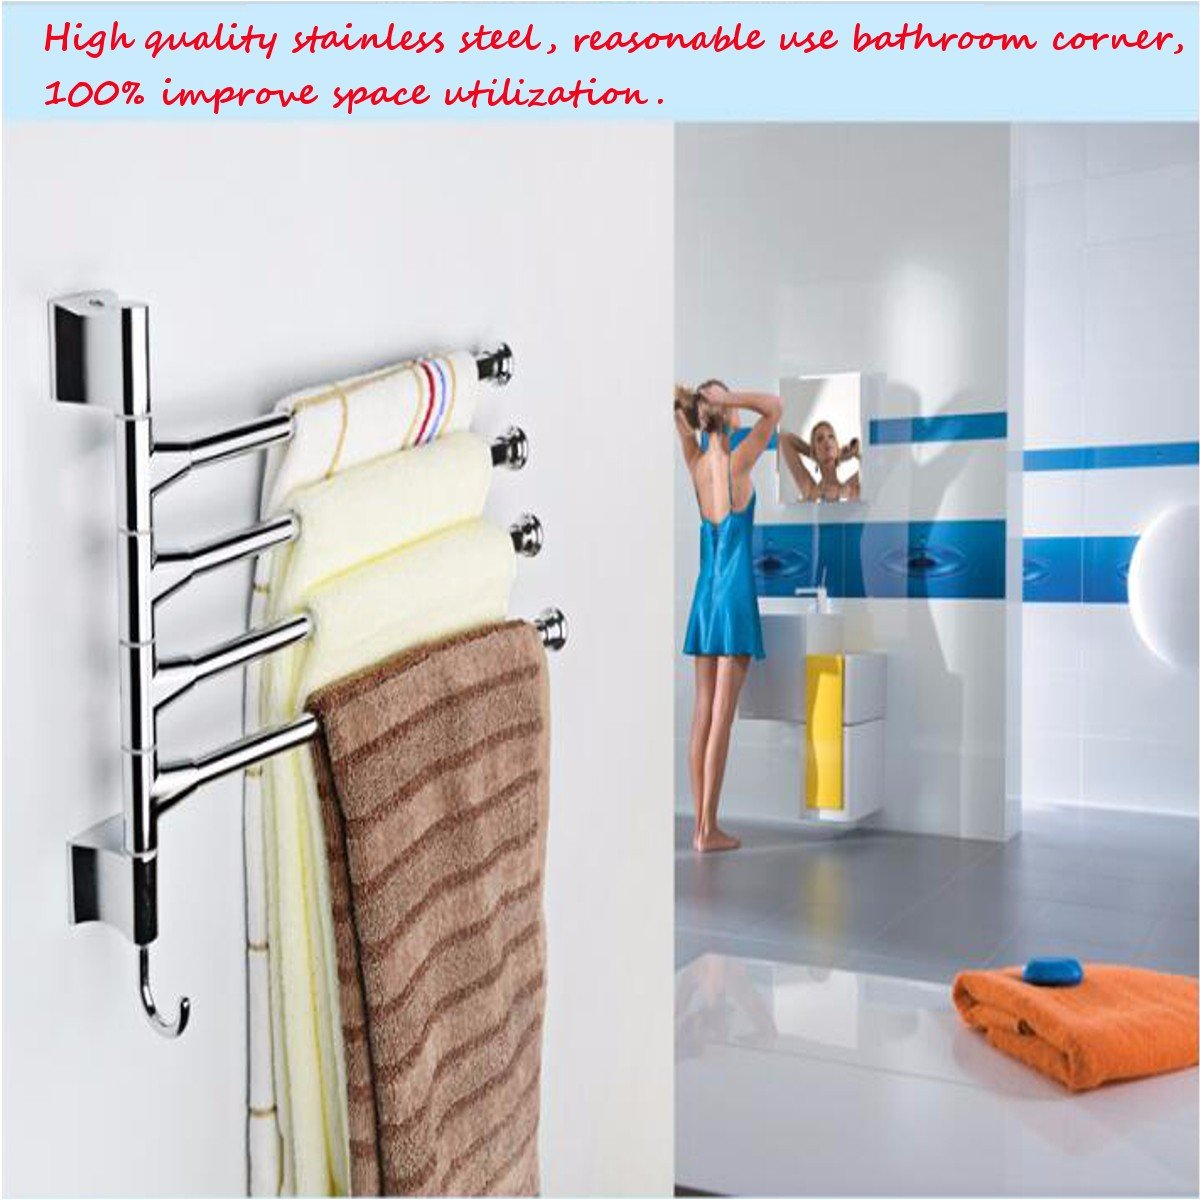 Vivona Hardware & Accessories Bathroom Kitchen Wall Mounted Rotating Towel Rack Storage Hold by Vivona (Image #6)